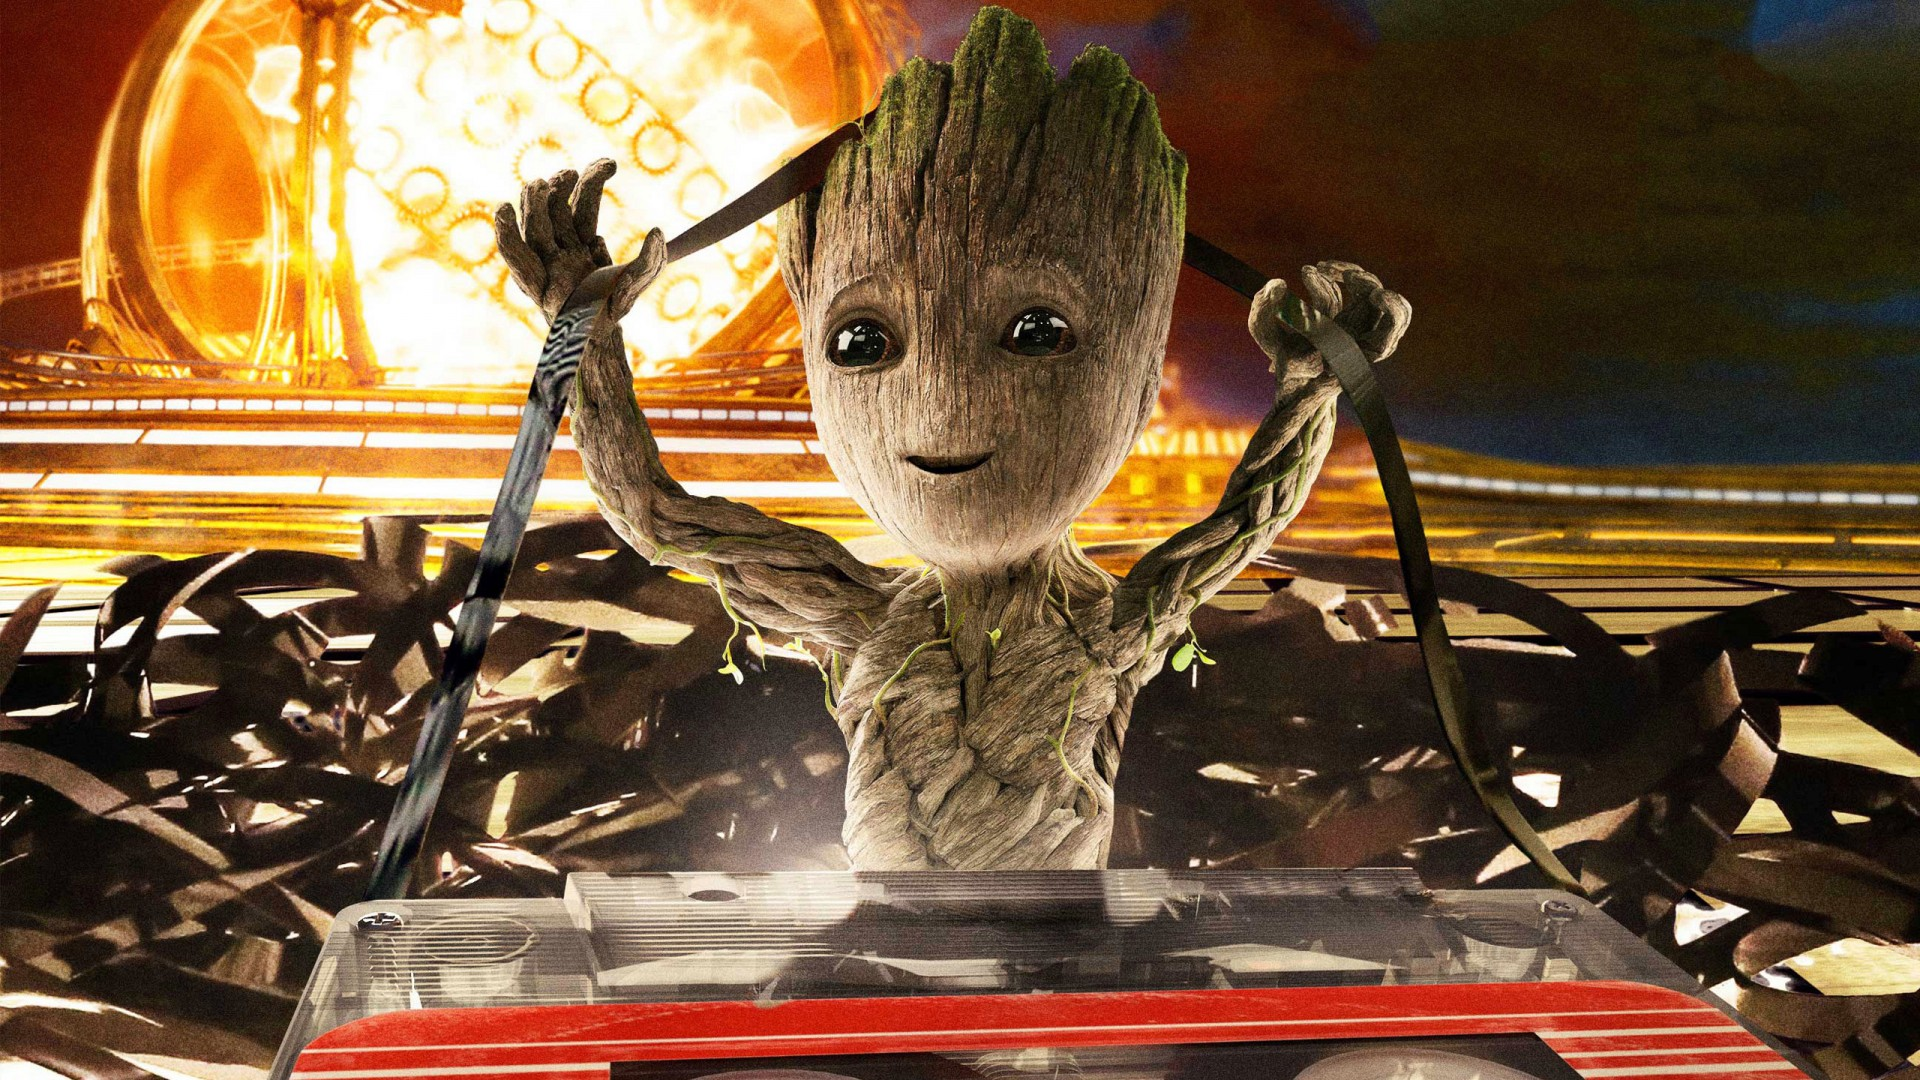 Cute Wallpaper 1440 1080 Baby Groot Wallpapers Hd Wallpapers Id 20020